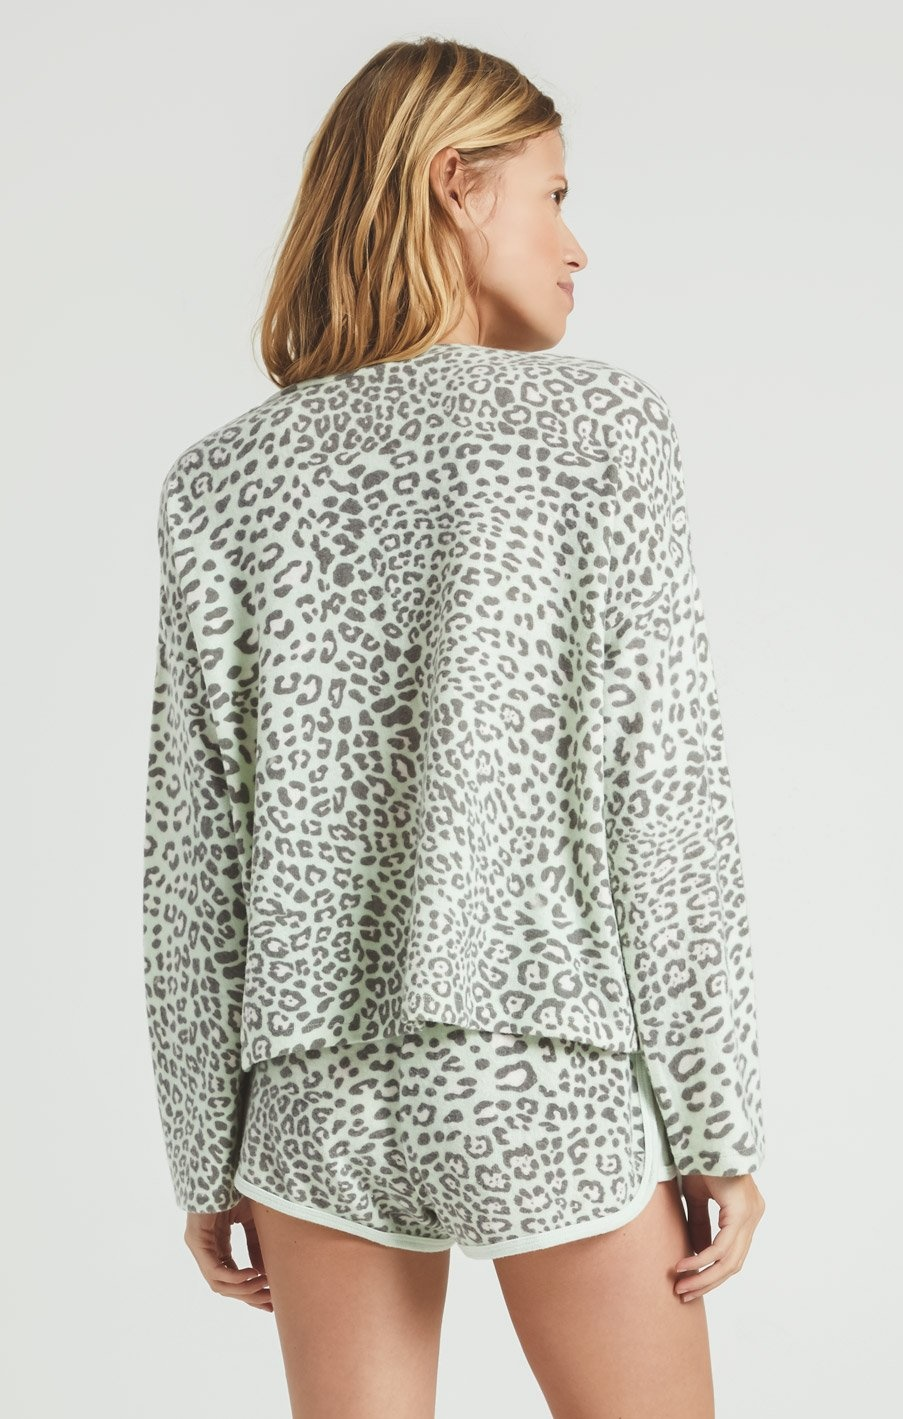 Lyra Leopard Top